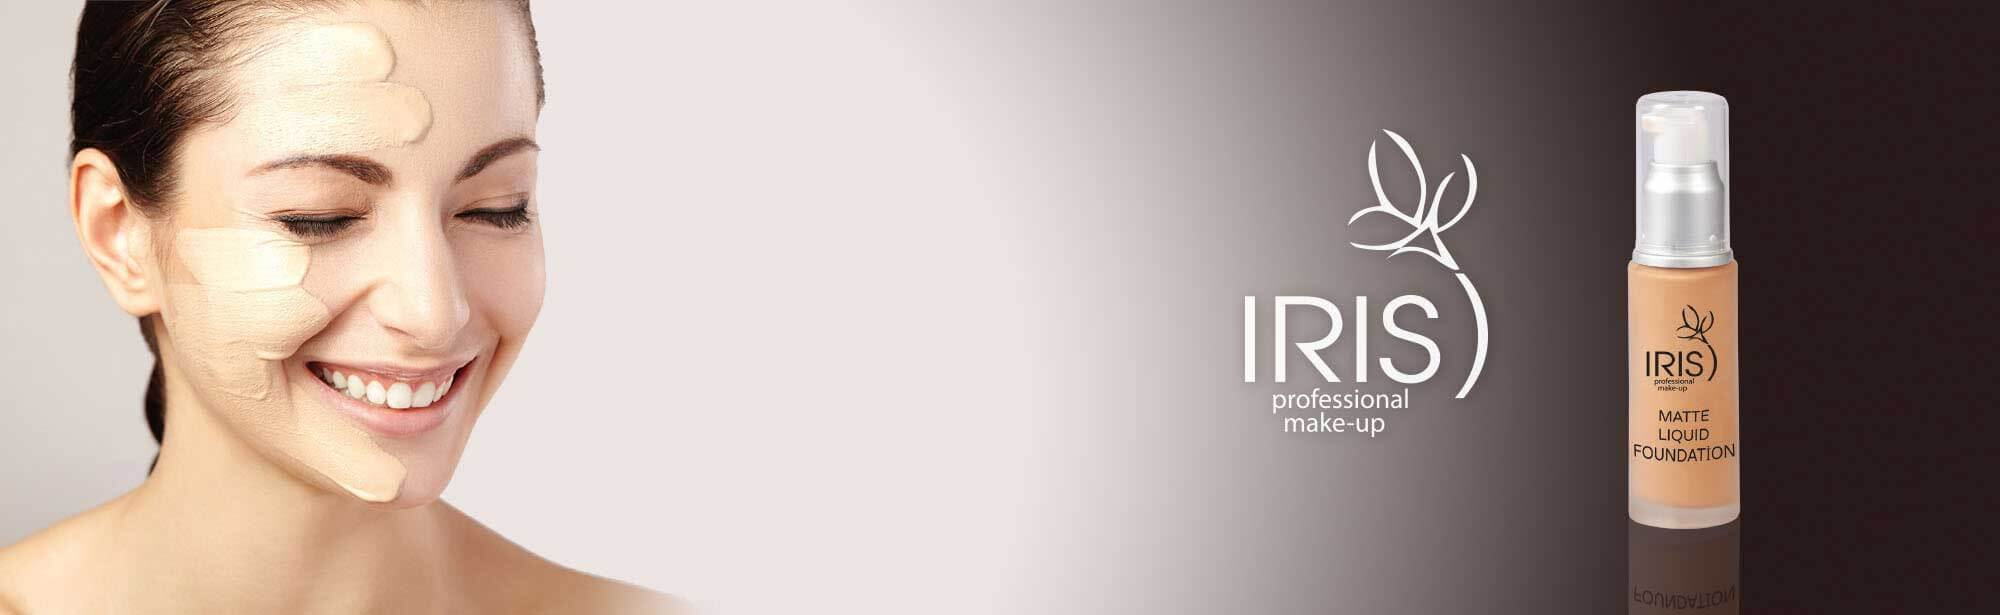 IRIS PROFESSİONAL MAKE-UP